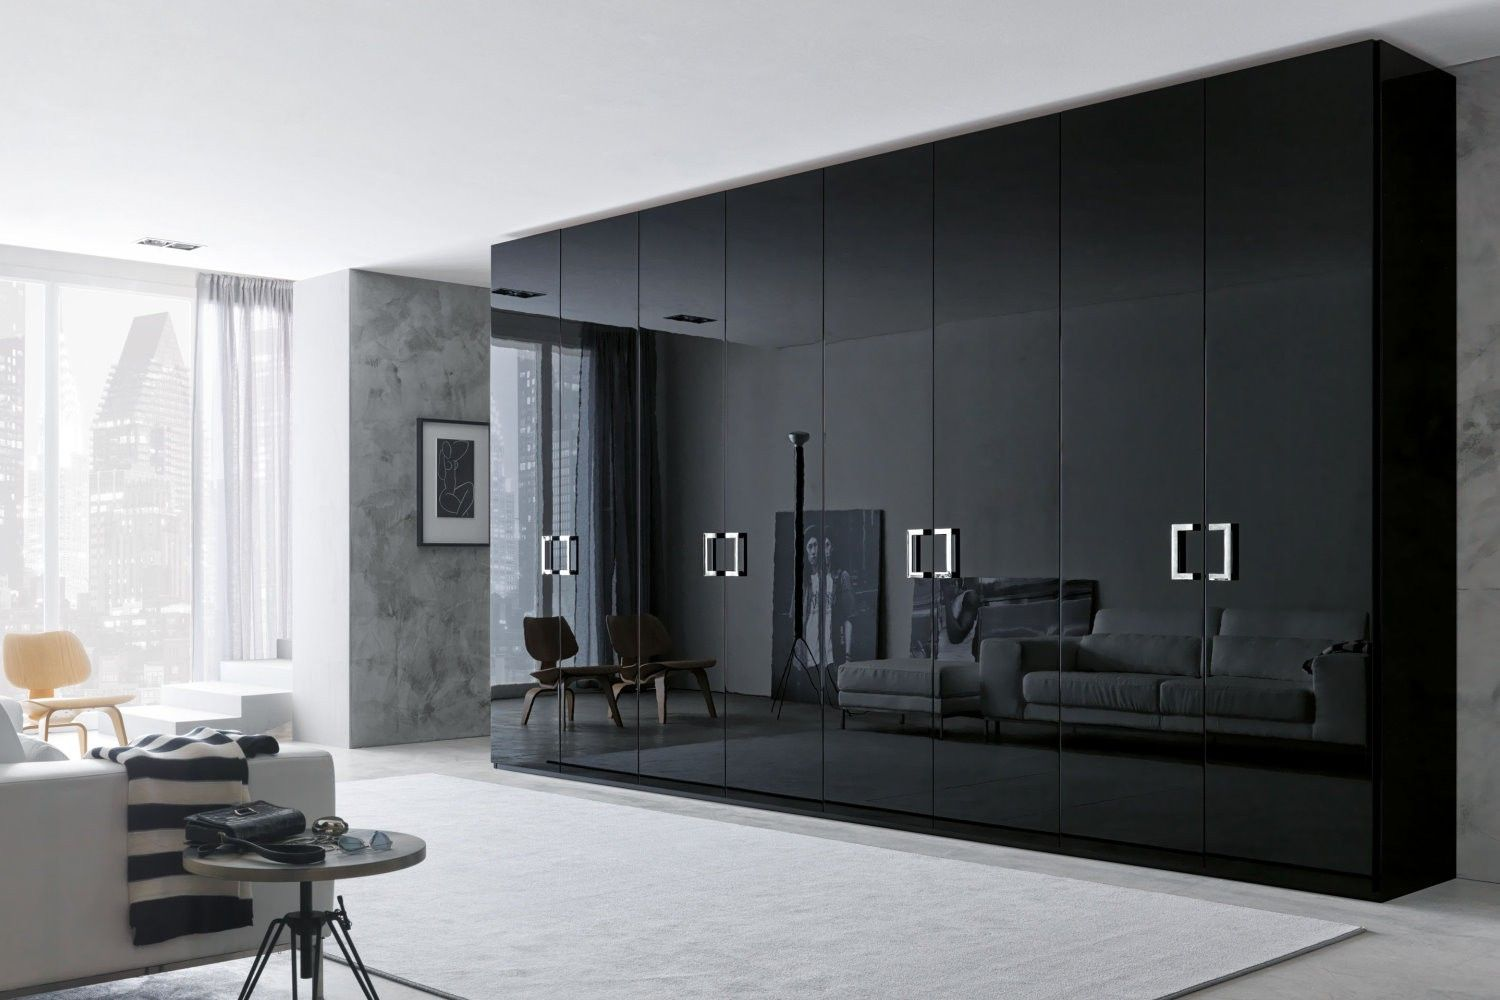 35 Modern Wardrobe Furniture Designs. 35 Modern Wardrobe Furniture Designs   Wardrobe design  Gray